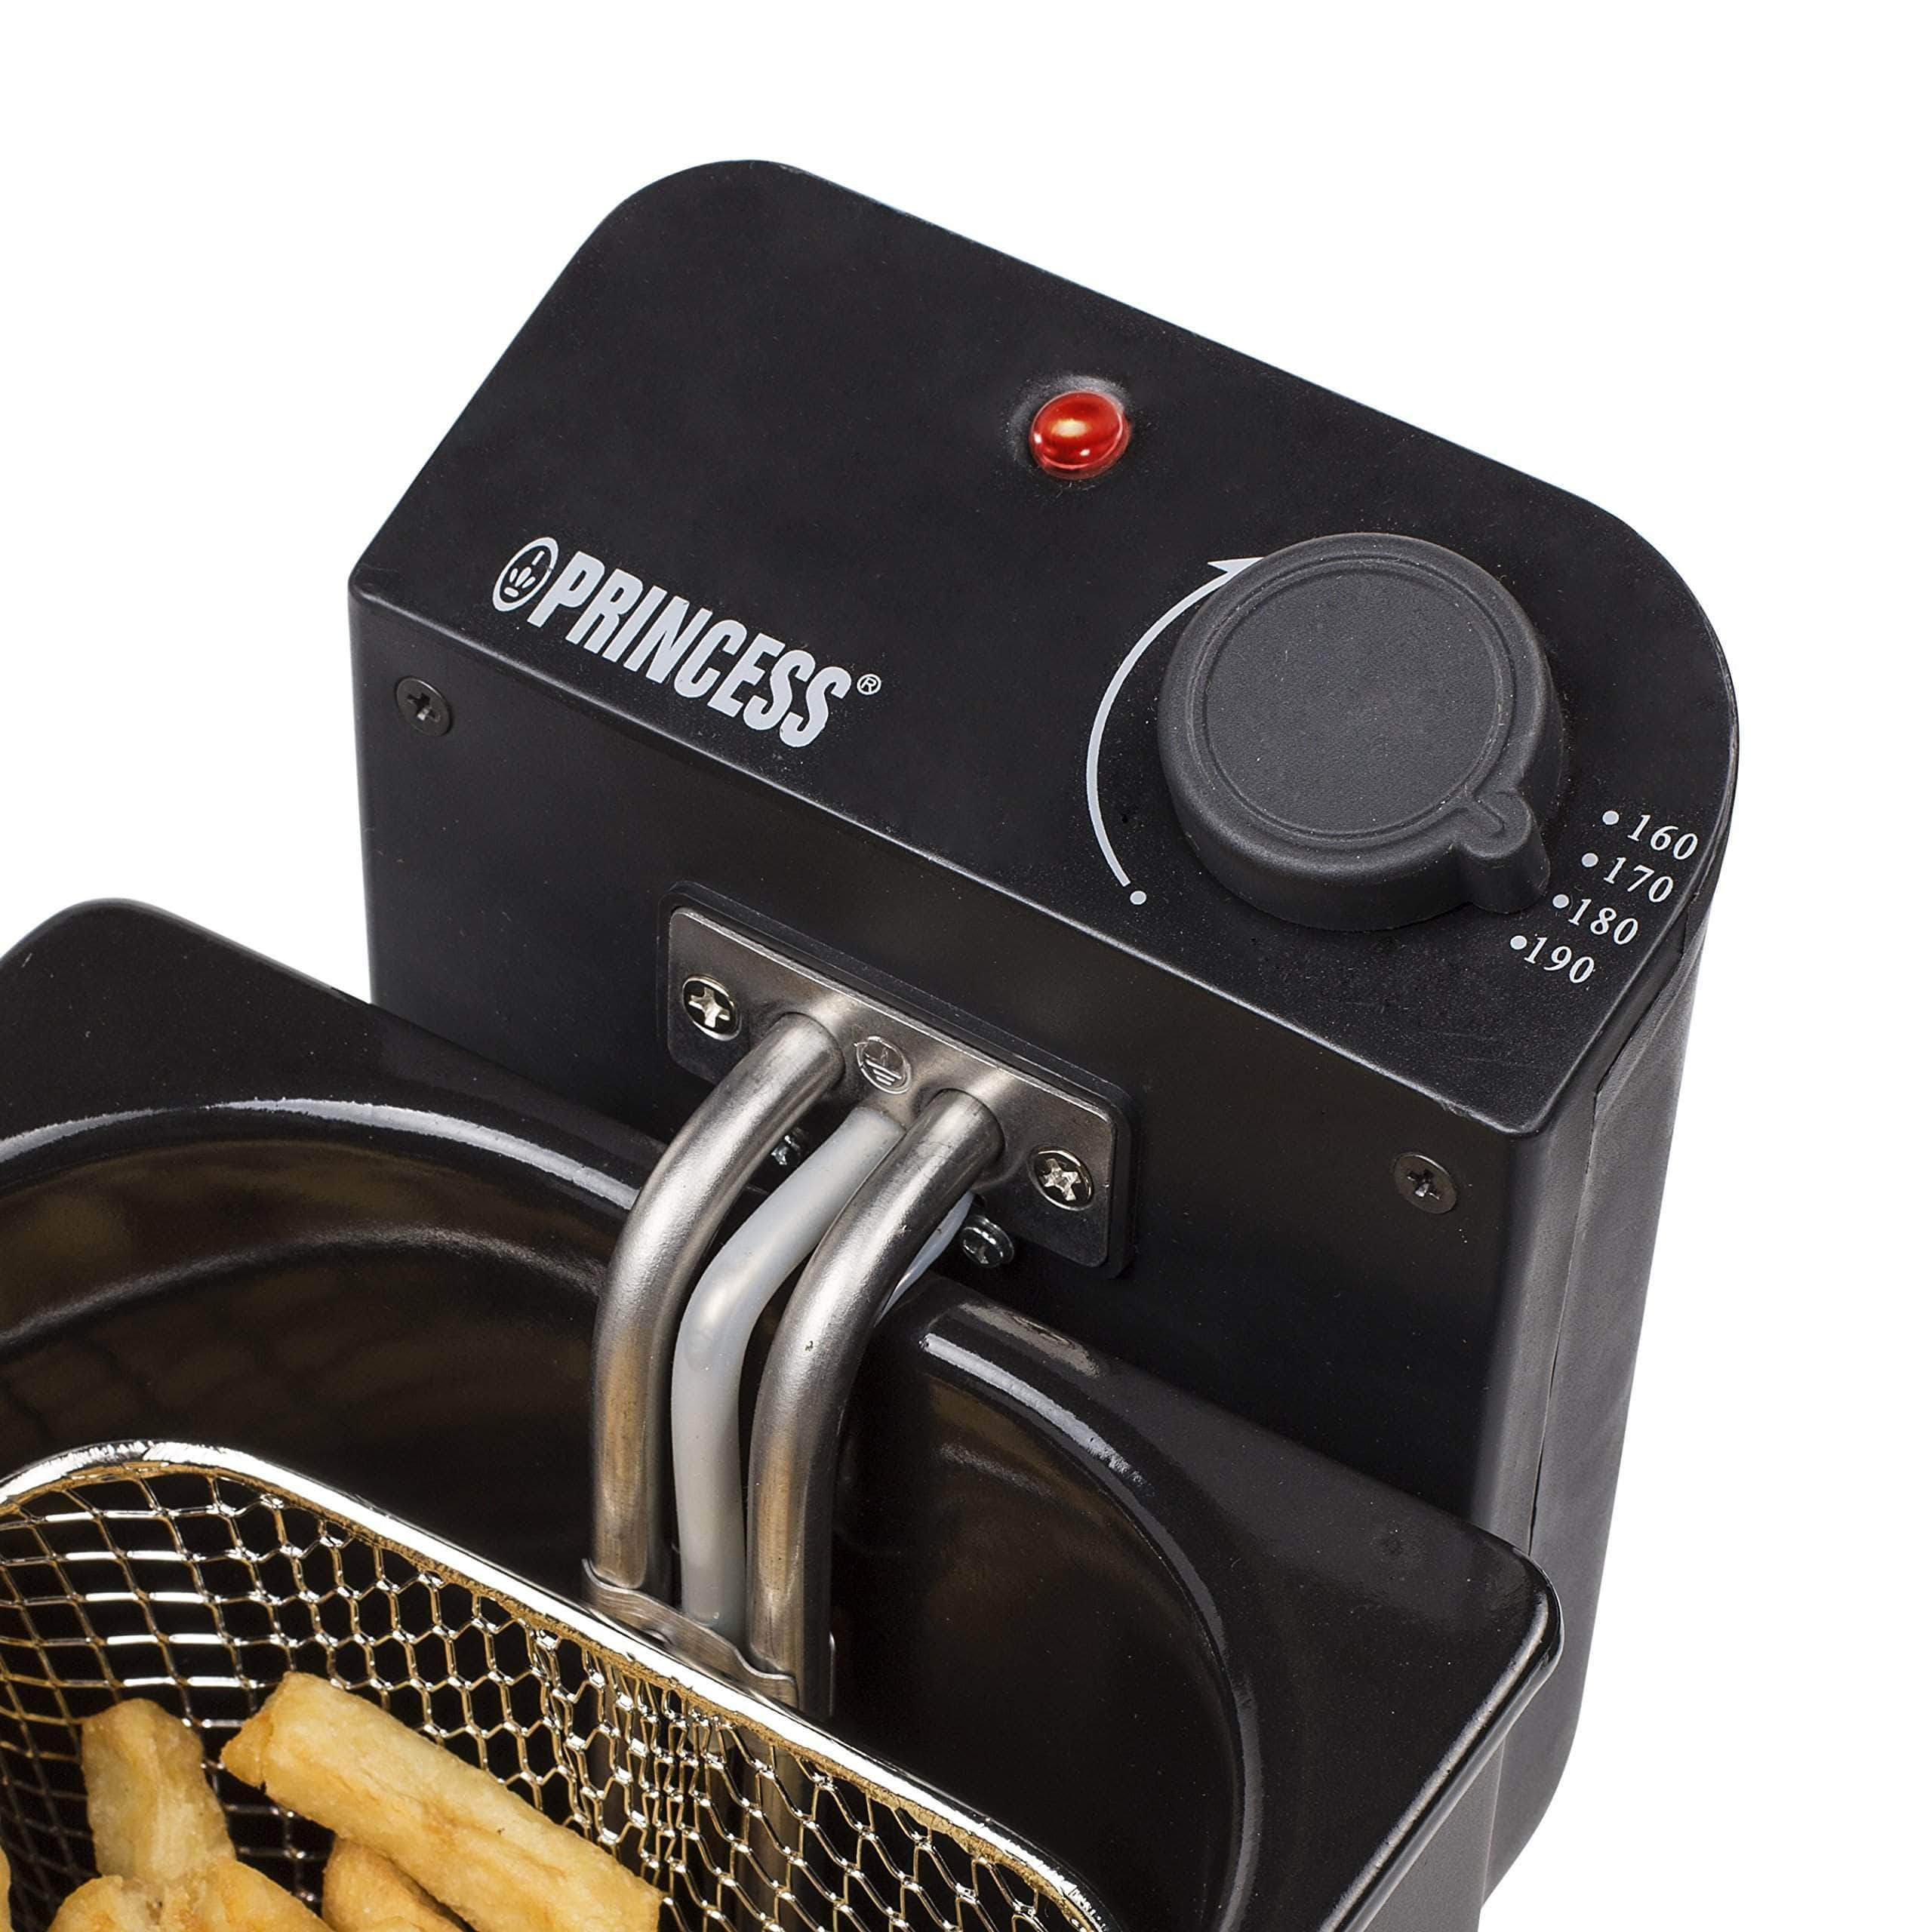 Amazon Freidora Princess 182727 Deep Fat Fryer negra - Zona fría - Filtro de seguridad - Volumen de 3 litros